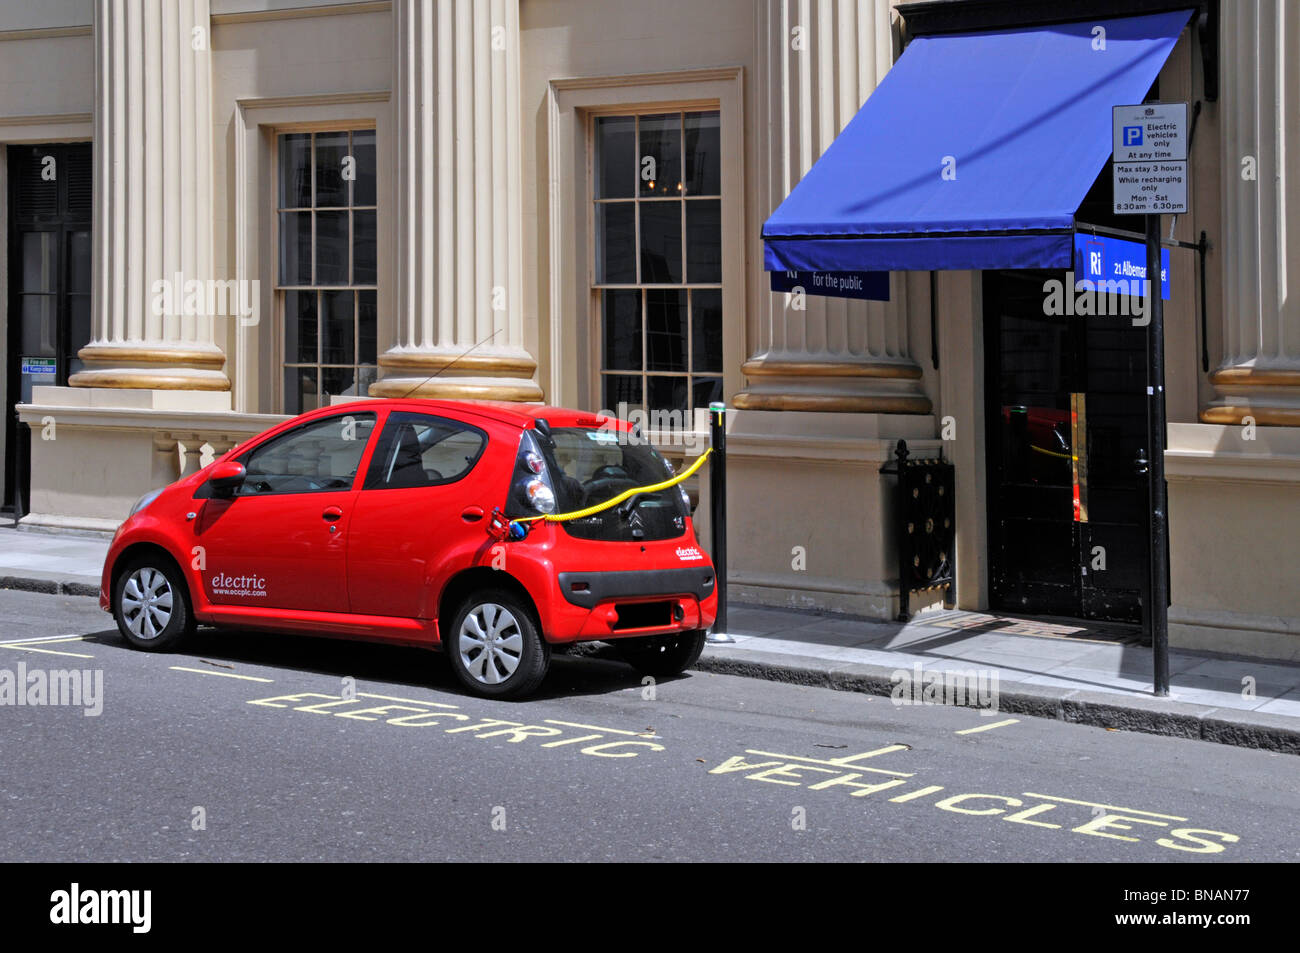 Environment & air pollution issues in London have resulted in dedicated vehicle bays for electric car use with - Stock Image